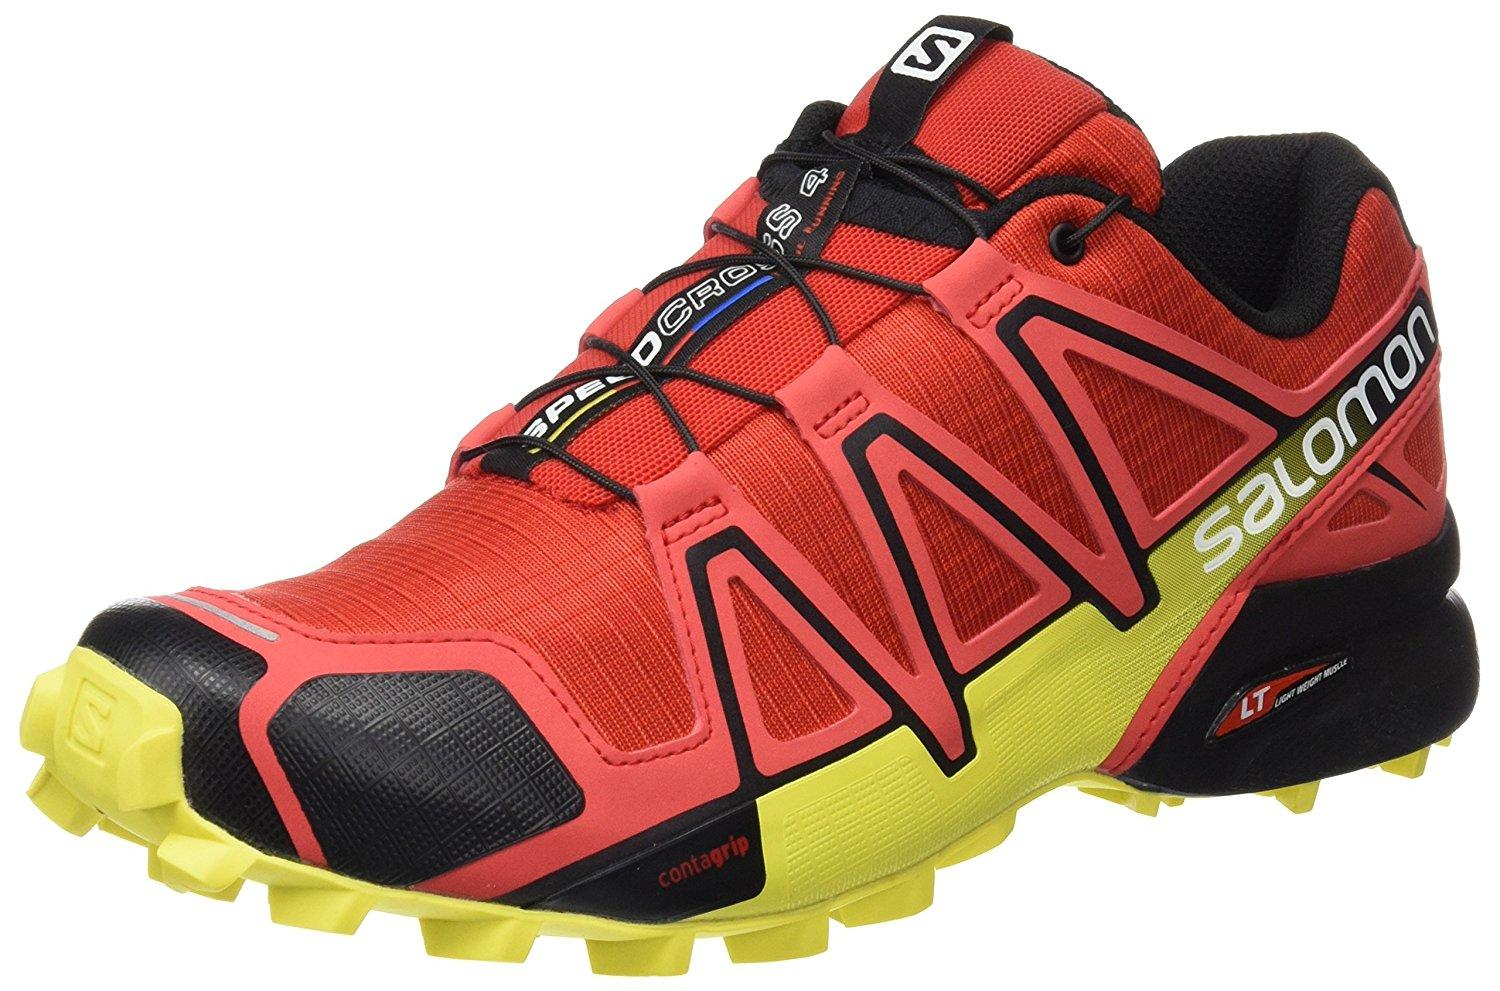 Salomon Speedcross  Shoes Review